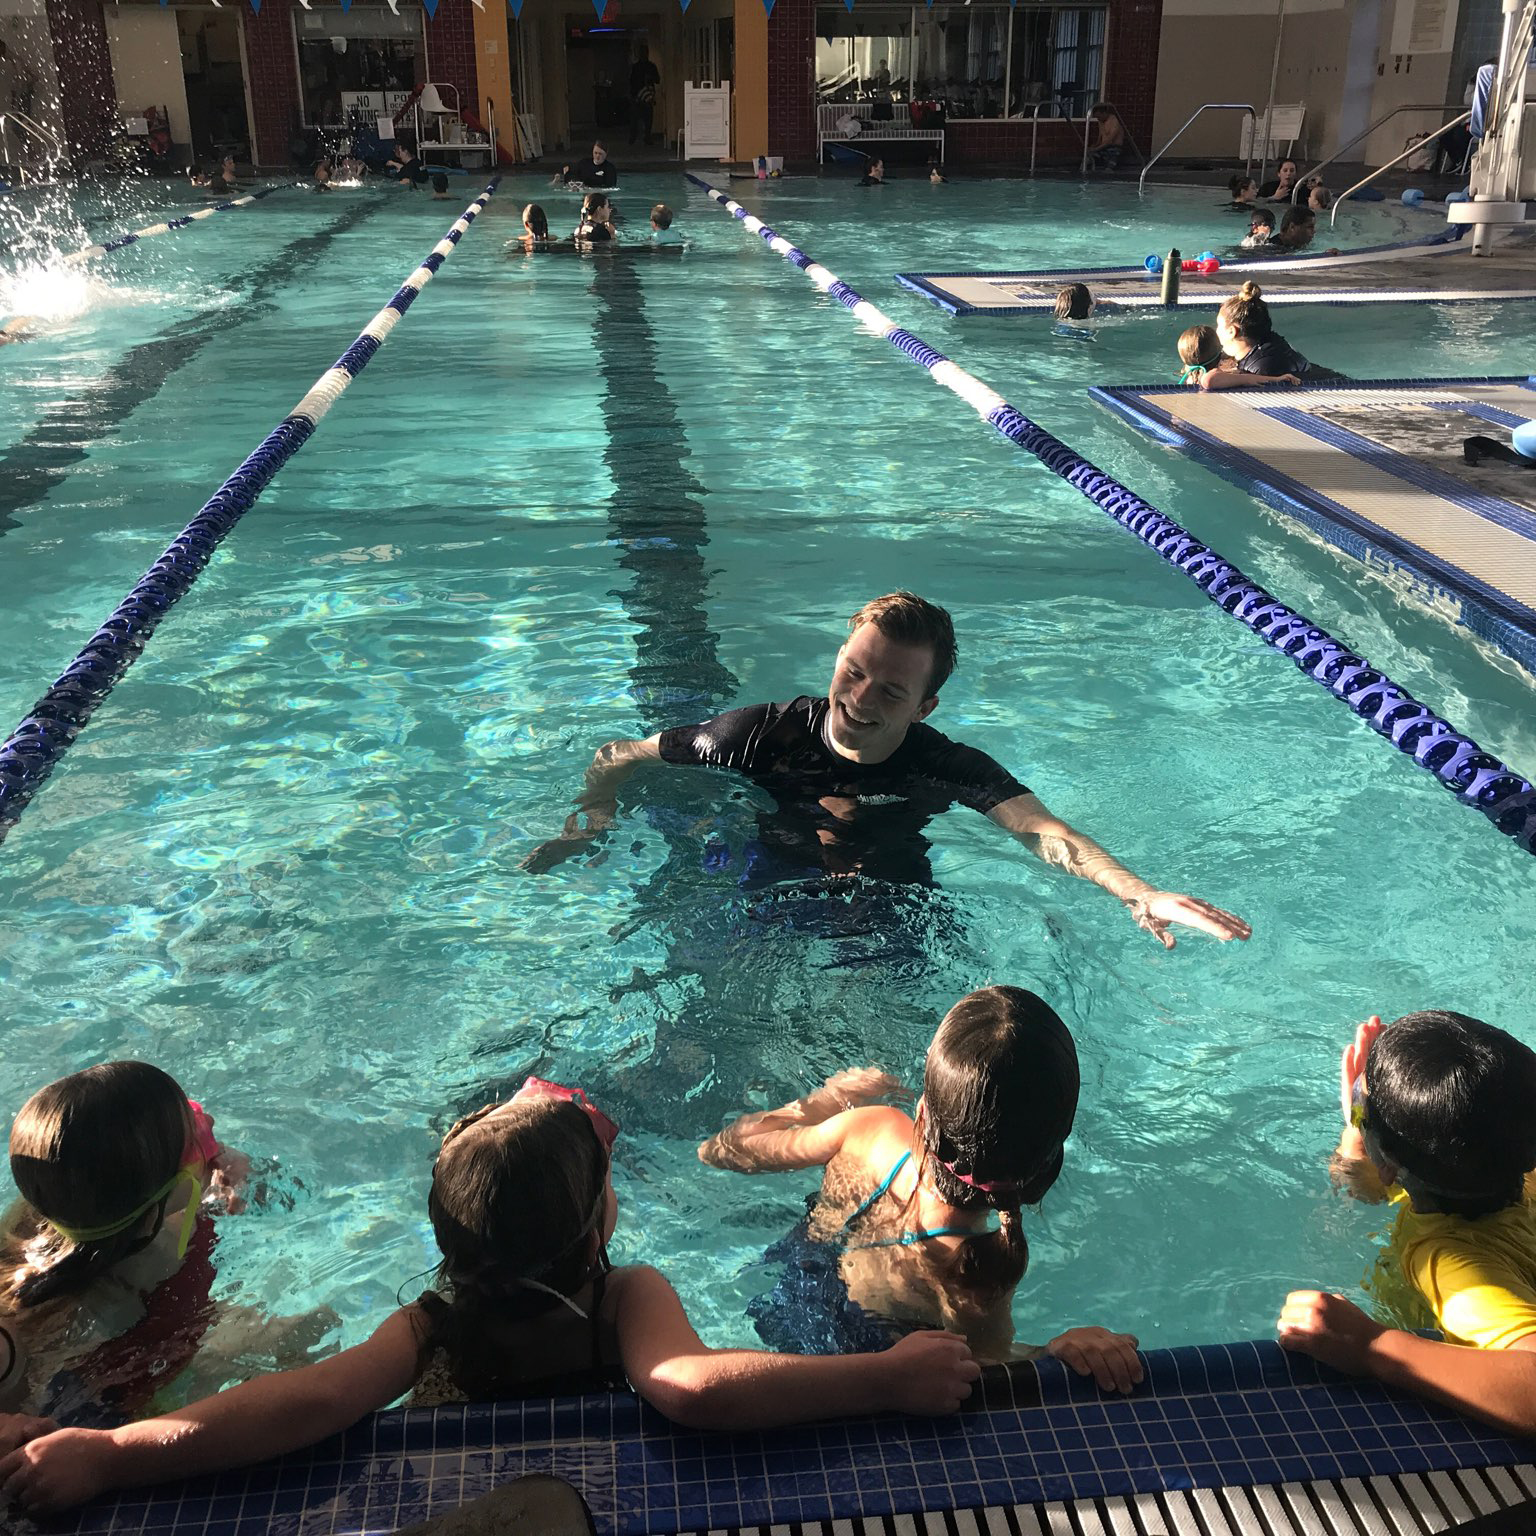 Swim Lessons - Providing a high-quality aquatic program that teaches participants of all ages and abilities how to be safe in, on and around the water as well as proper swimming skills and techniques.